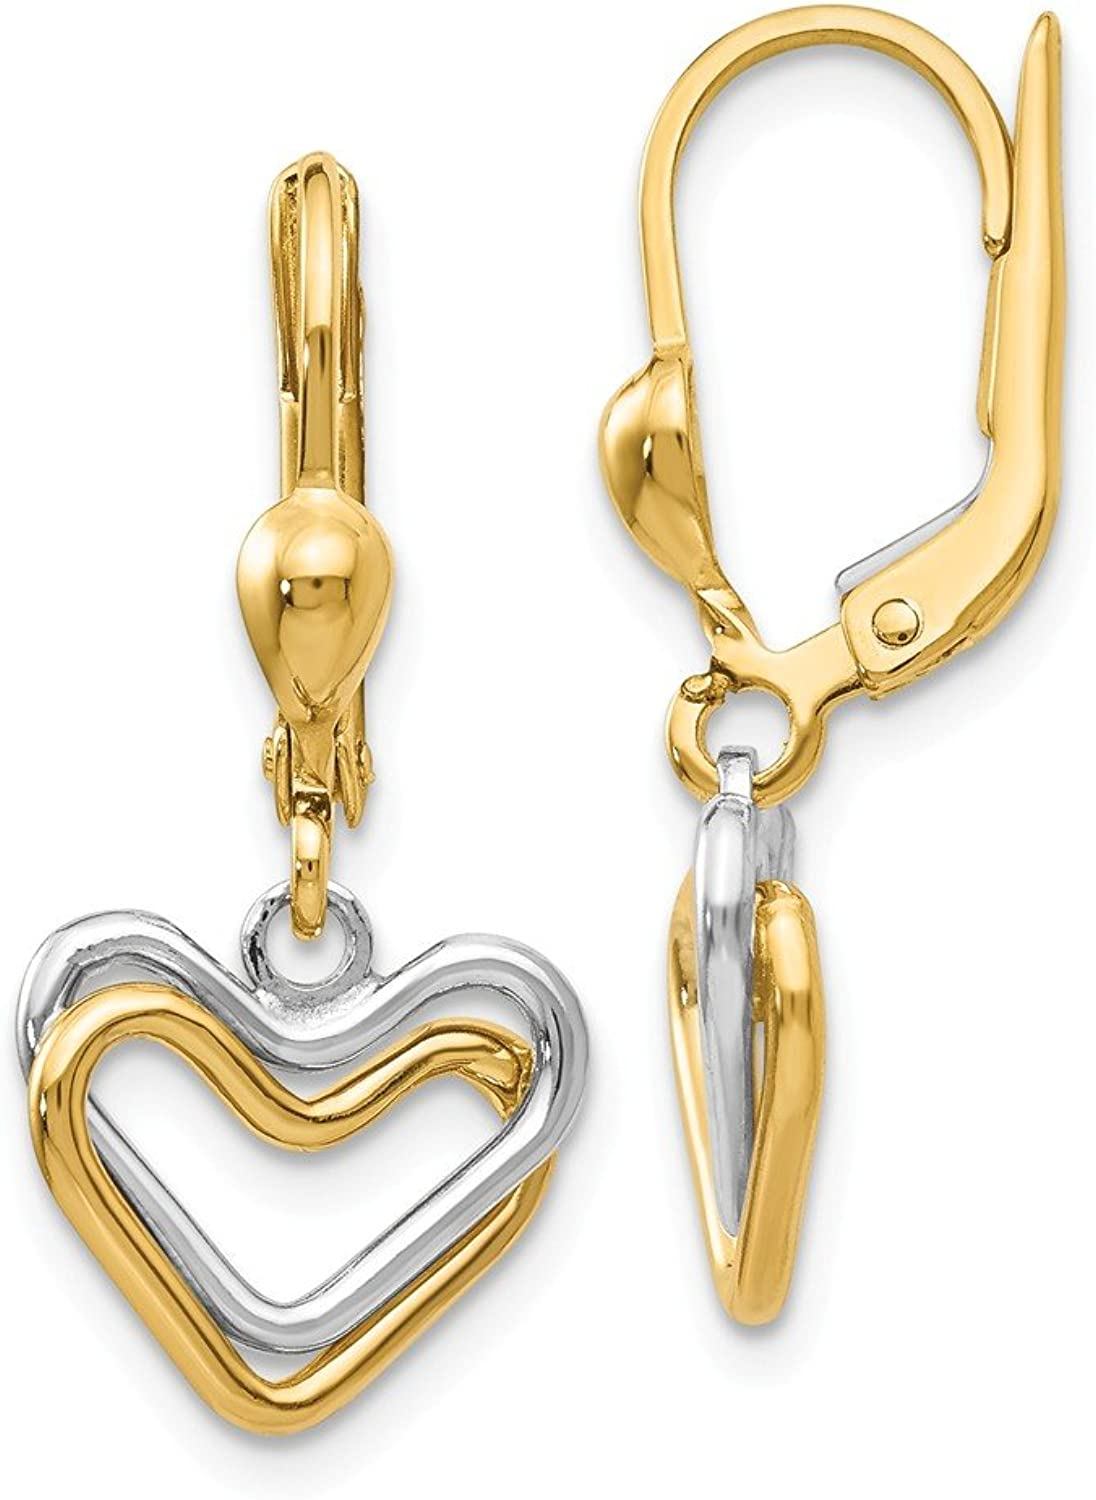 Beautiful White and yellow gold 14K Whiteandyellowgold 14k Twotone Heart Leverback Dan